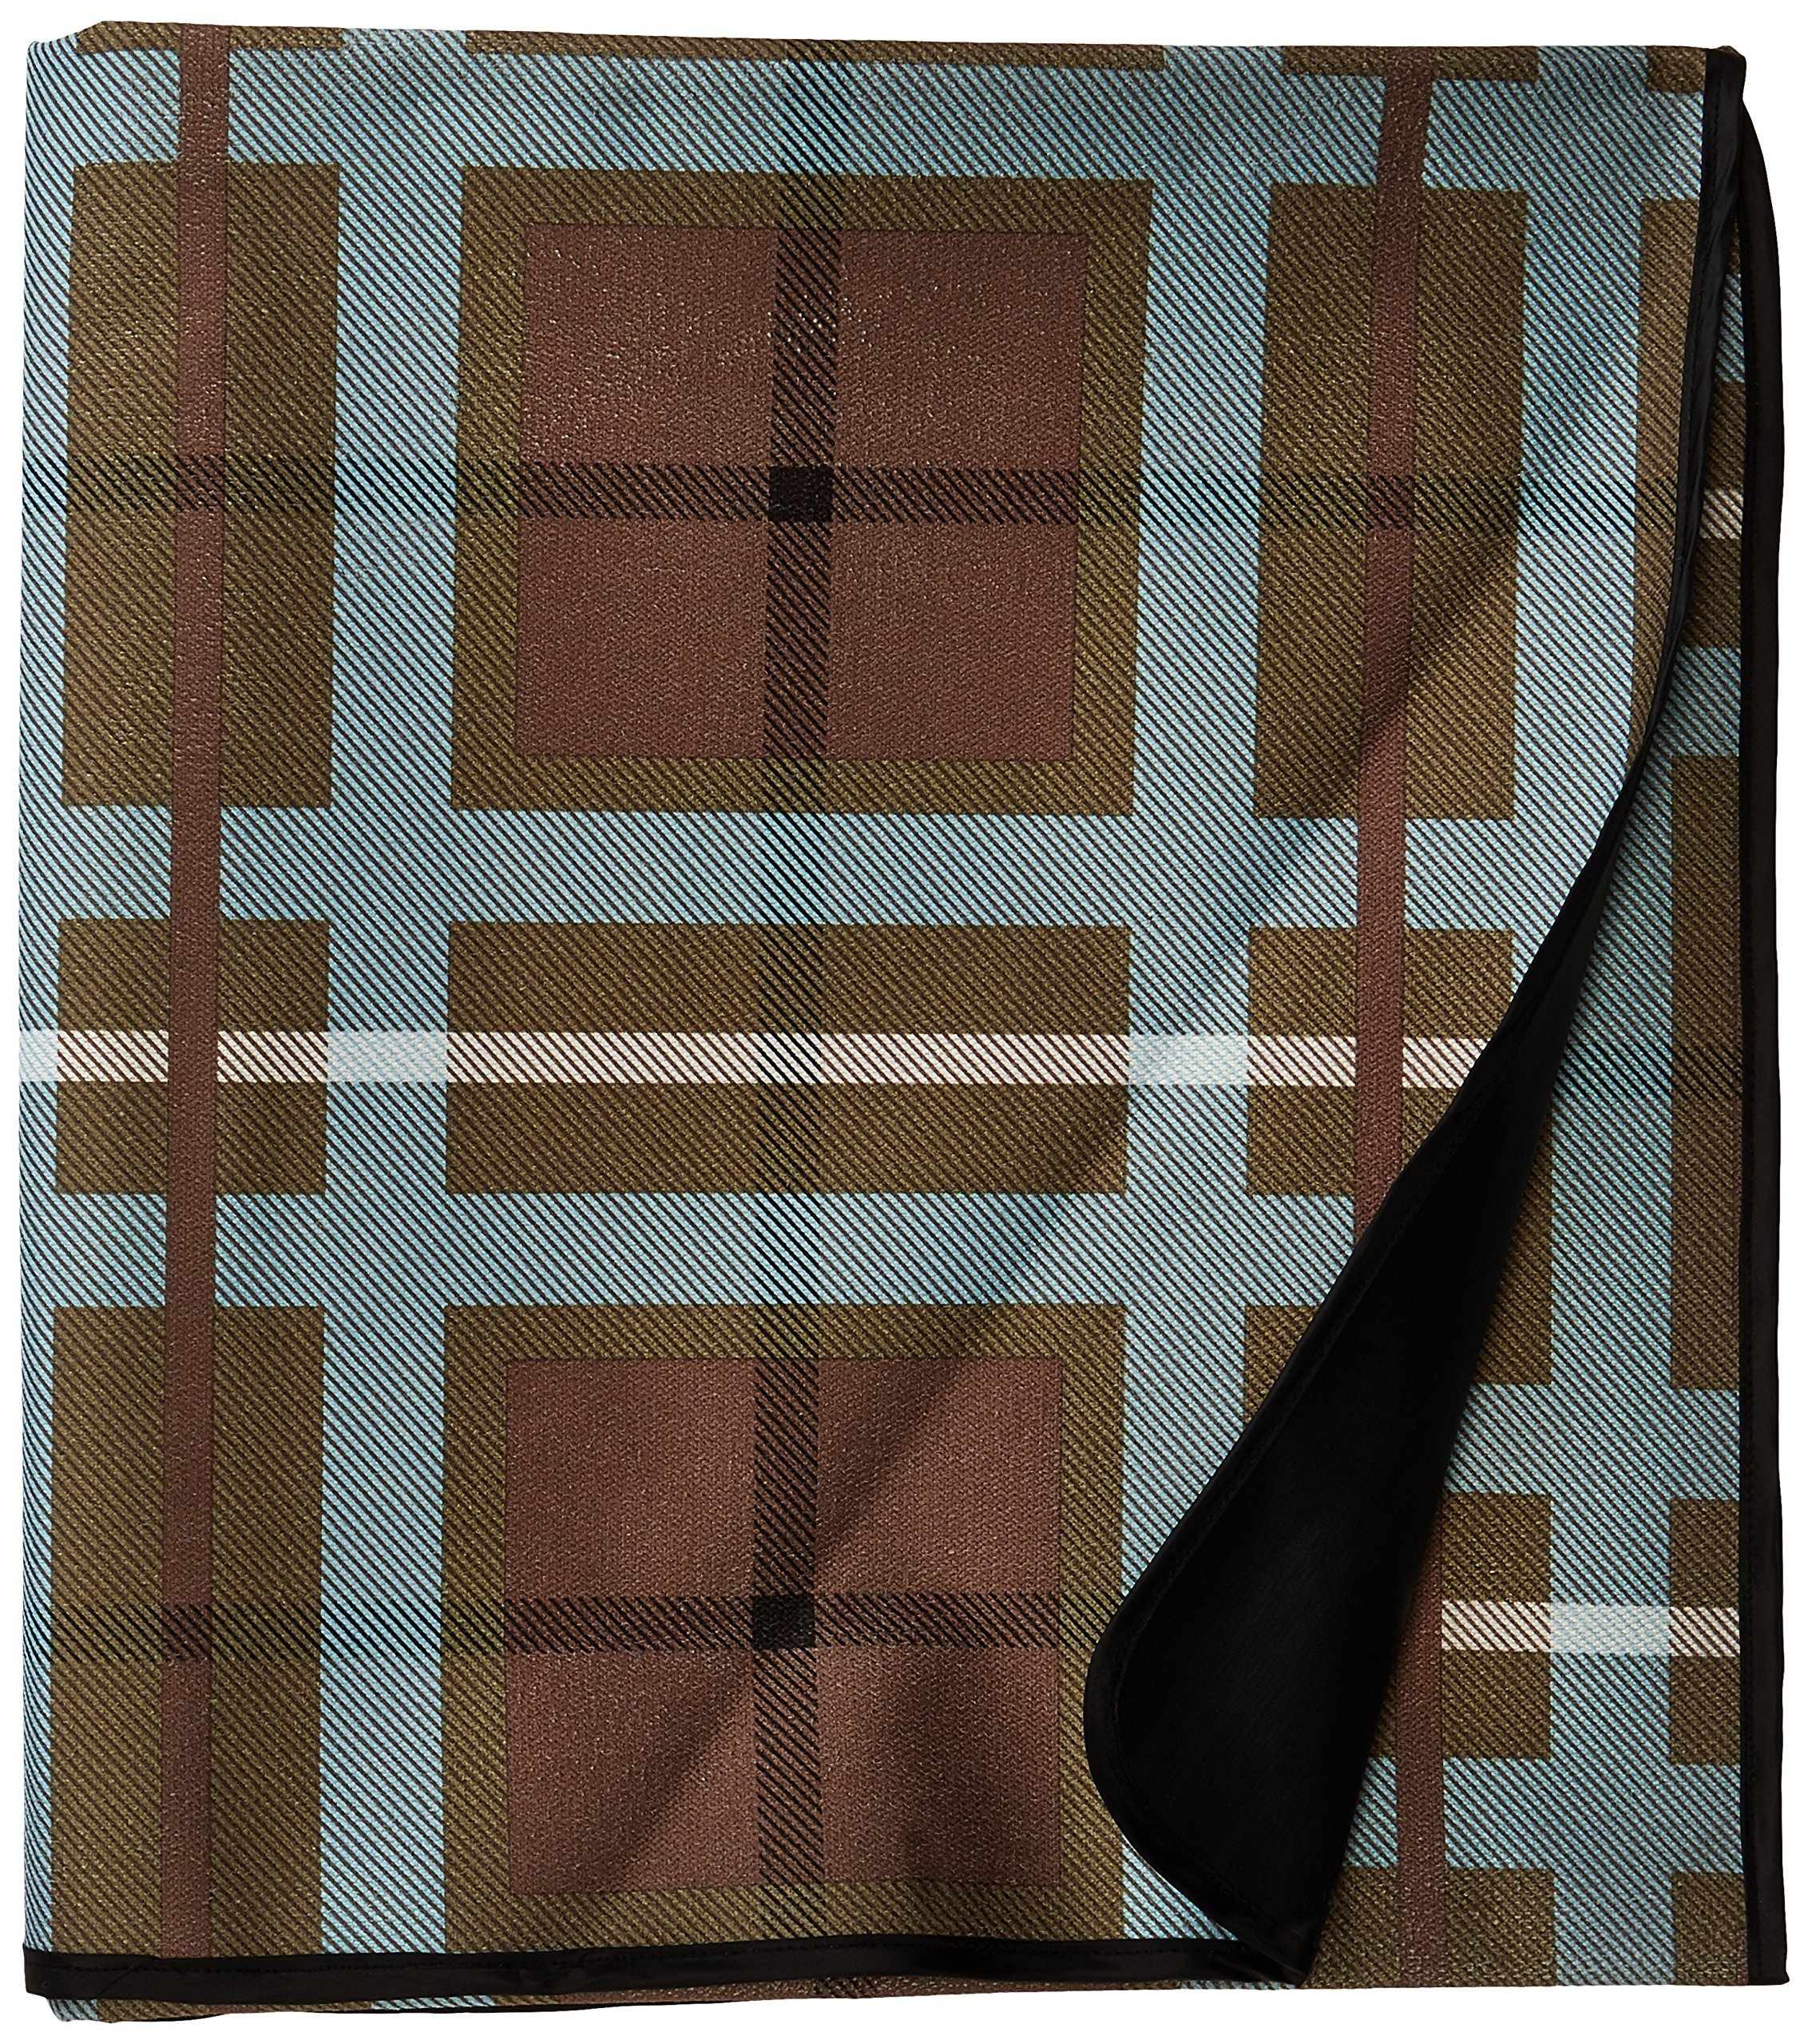 Carolina Pet Versatile Luxurious Multi-Purpose Throw for Pets, Blue/Brown Plaid - Color: blue/brown plaid Anti-Skid PVC backing; will not shrink or fade; protects furniture from pet hair and soiling Suitable for all sizes - blankets-throws, bedroom-sheets-comforters, bedroom - A1IBNWP6qVL -